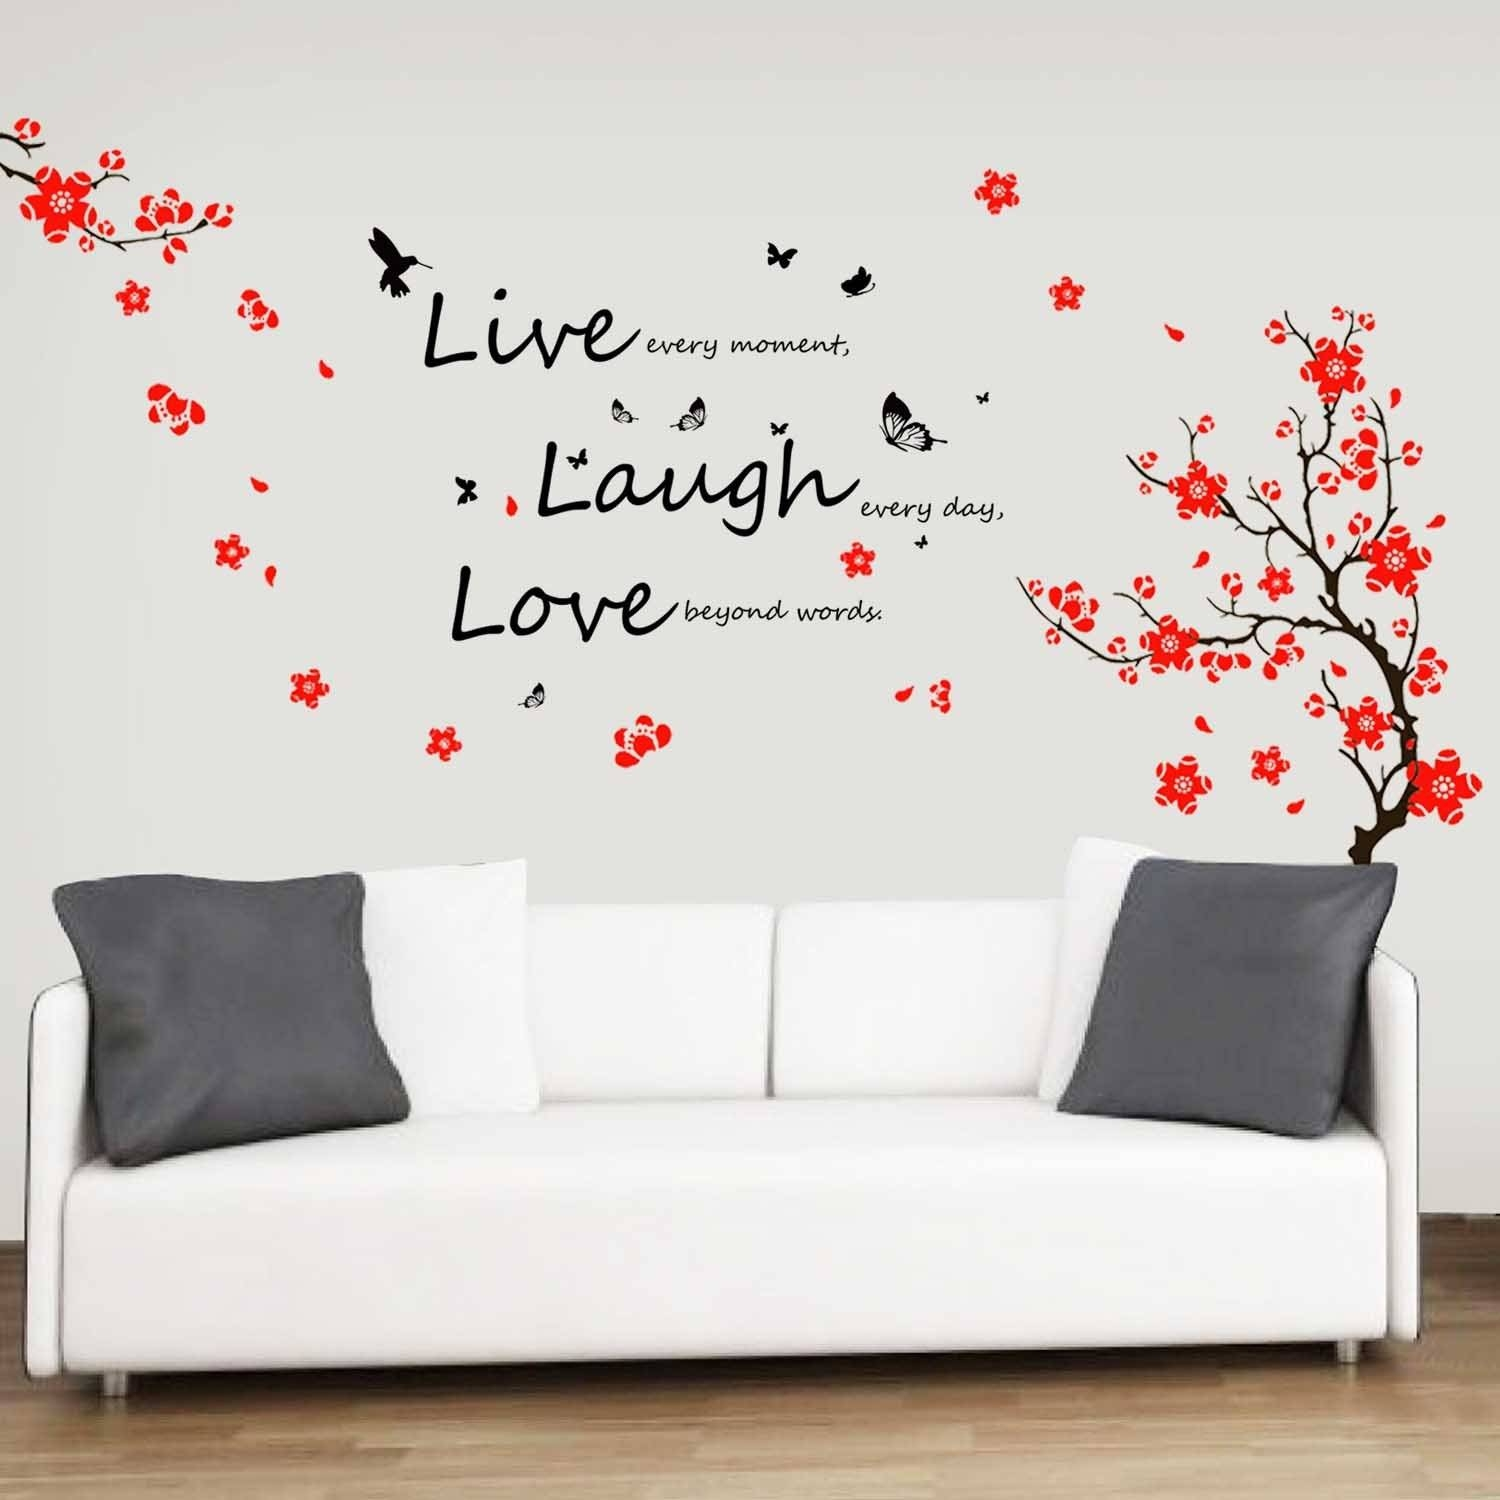 Articles With Cute Wall Art Sayings Tag: Cute Wall Art Images (View 3 of 20)